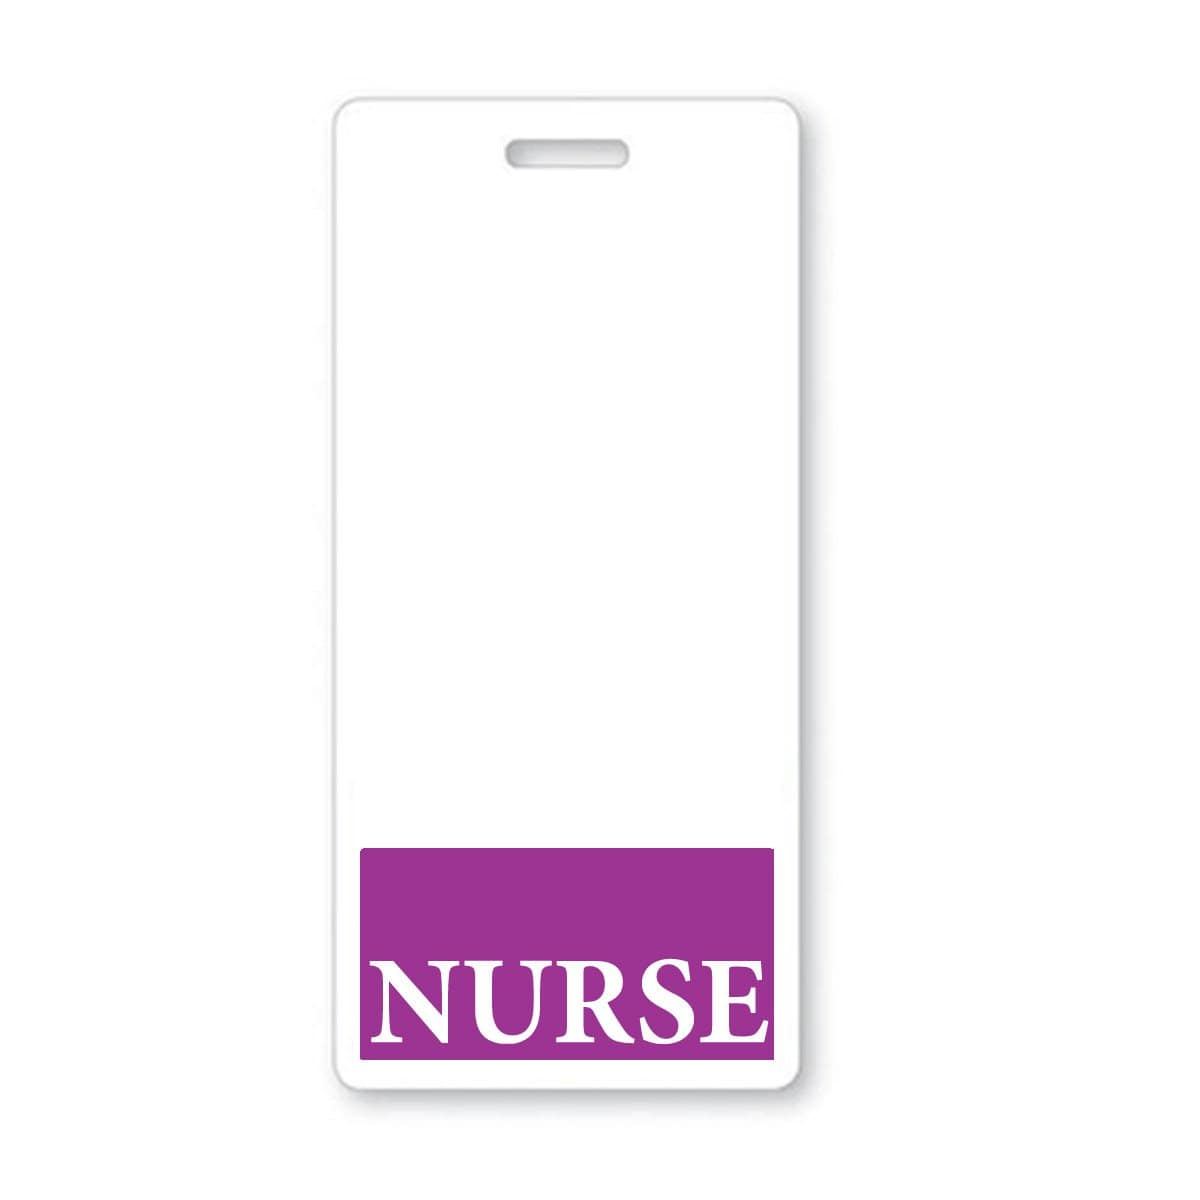 NURSE Vertical Badge Buddy with Purple Border